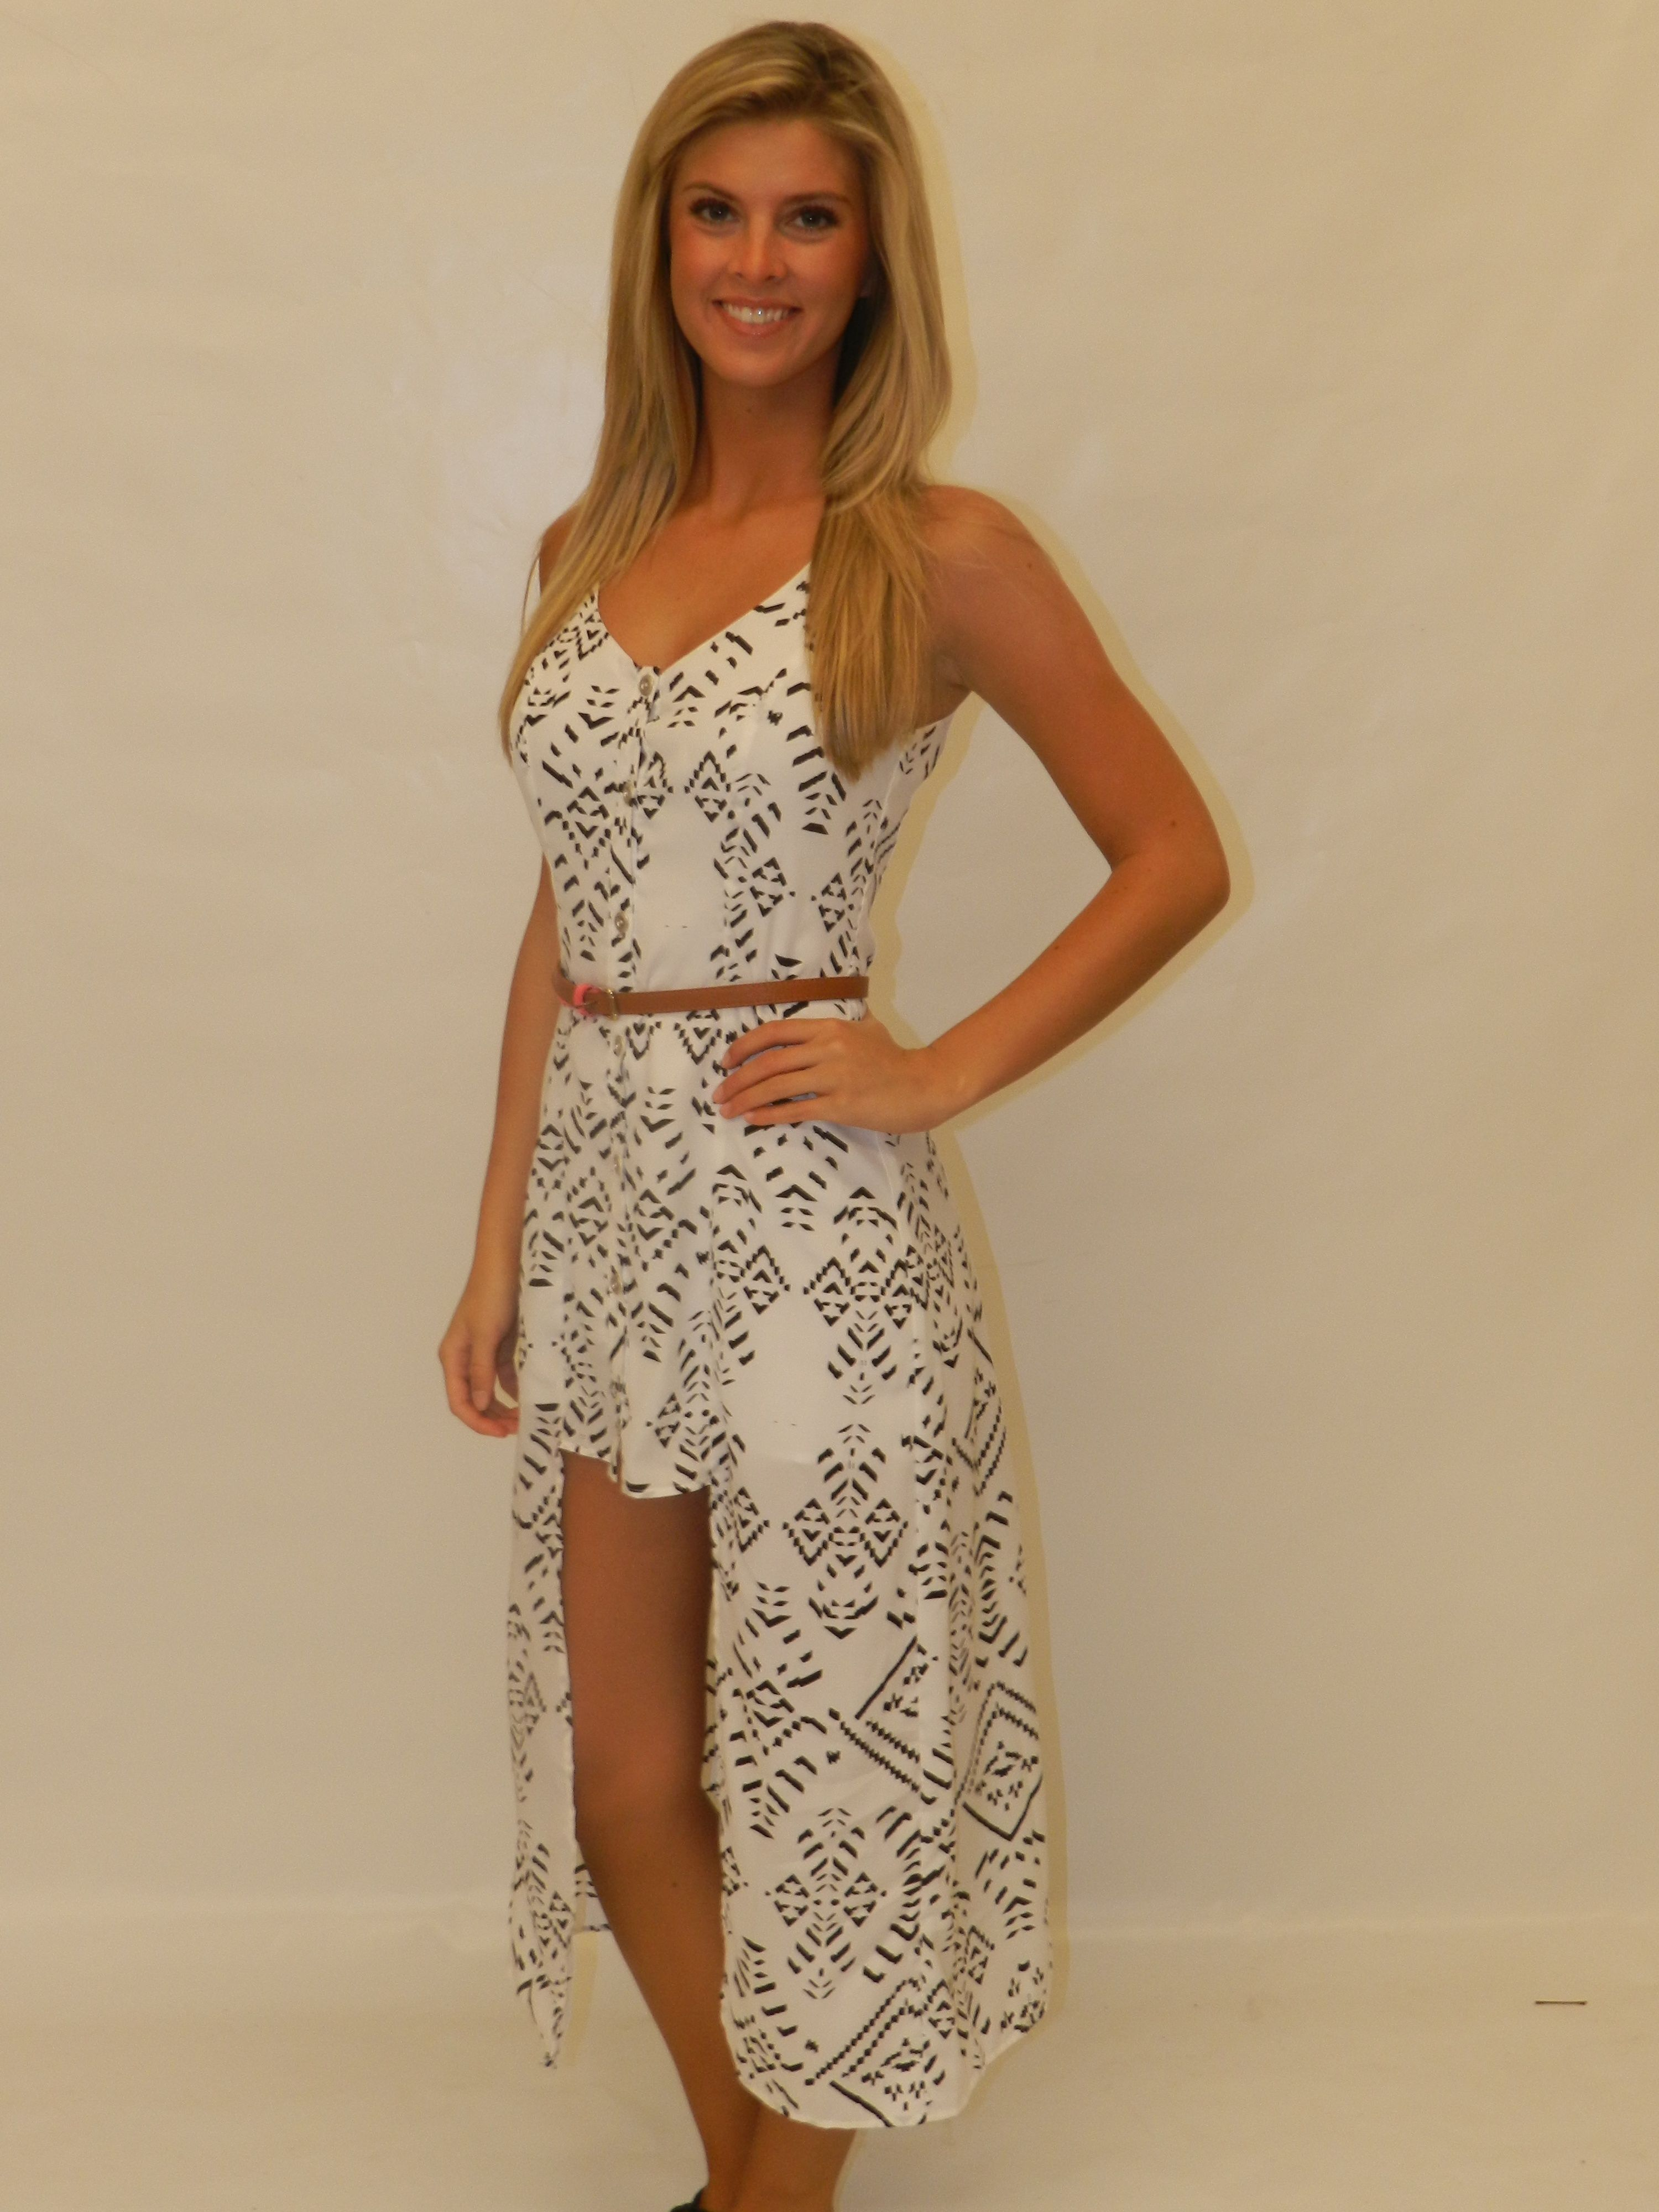 Boutique style dresses facebook stock